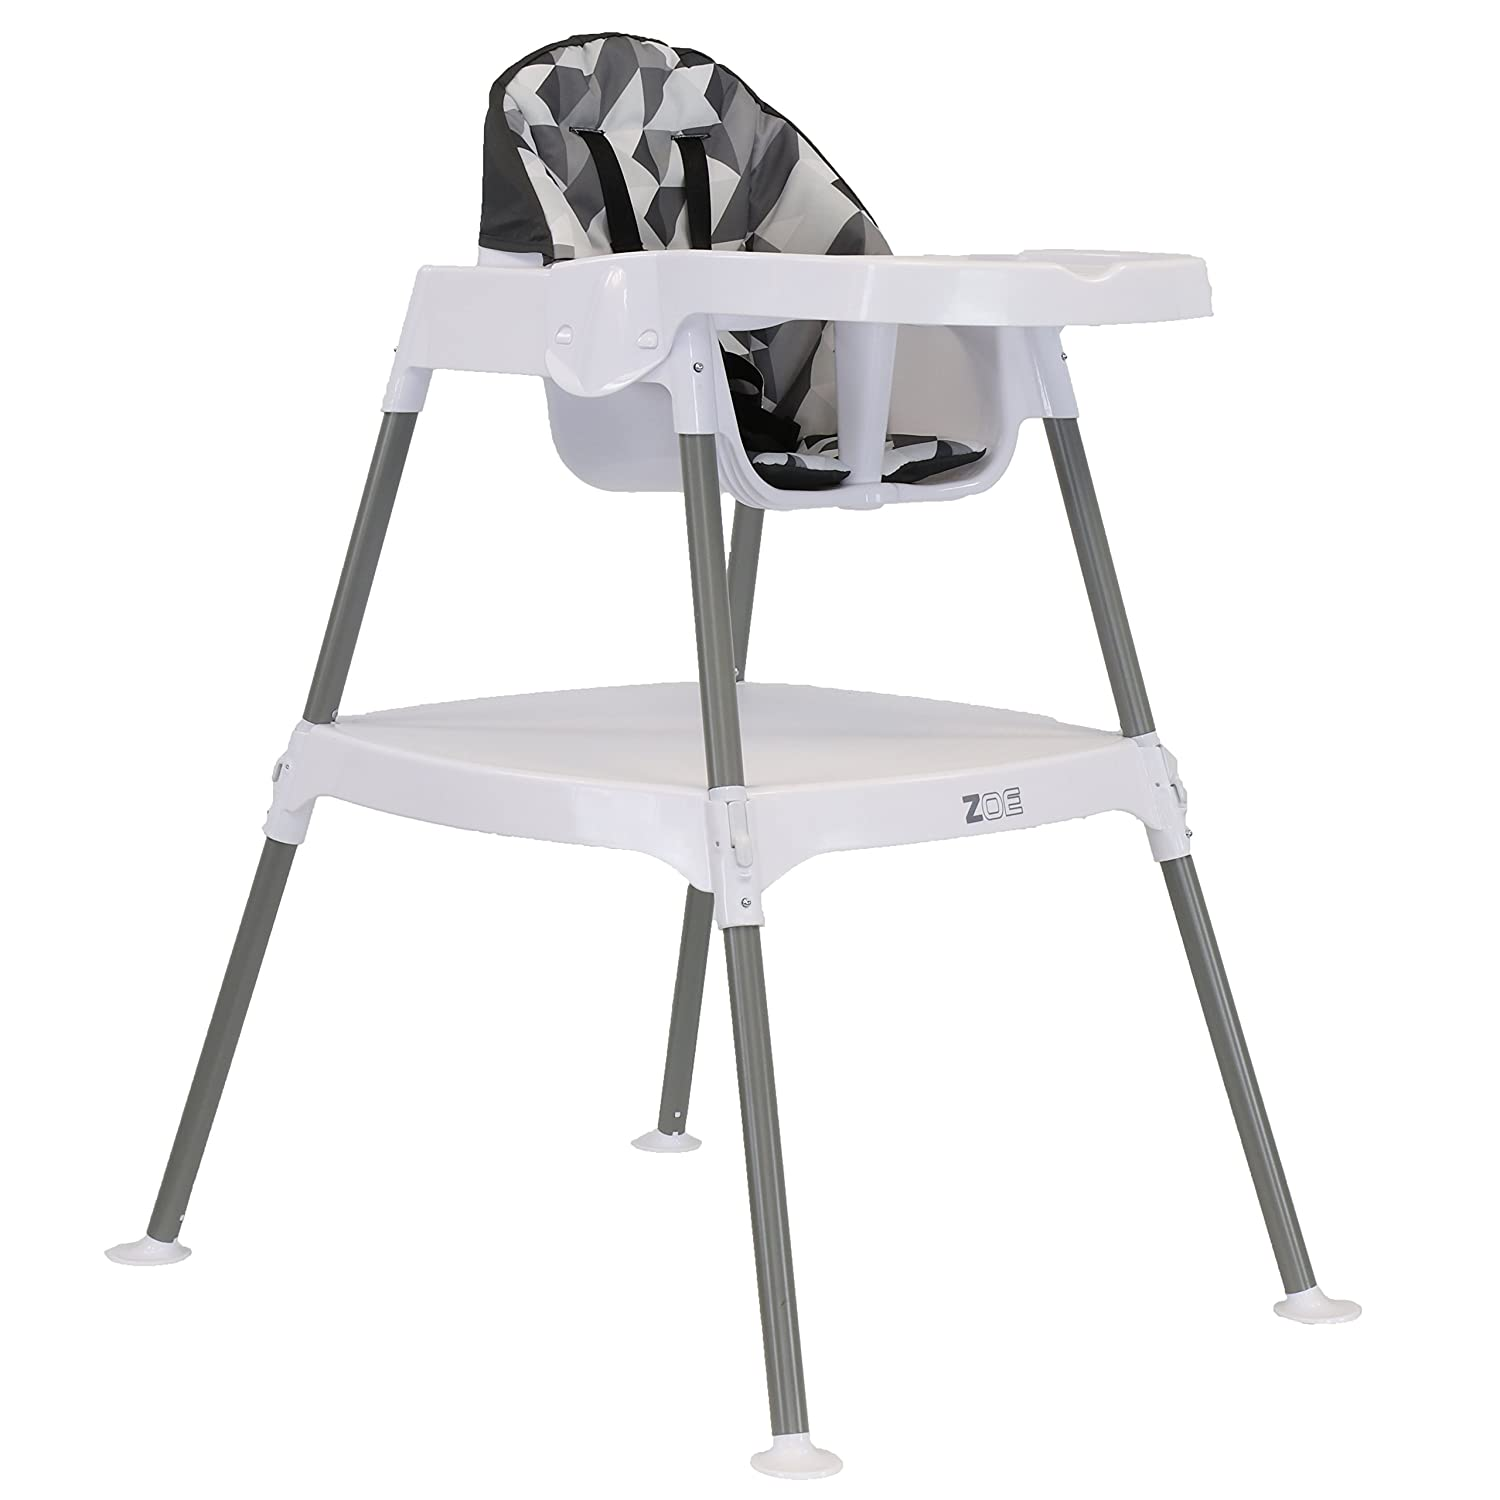 ZOE High Chair (5-in-1 High Chair, Aqua)